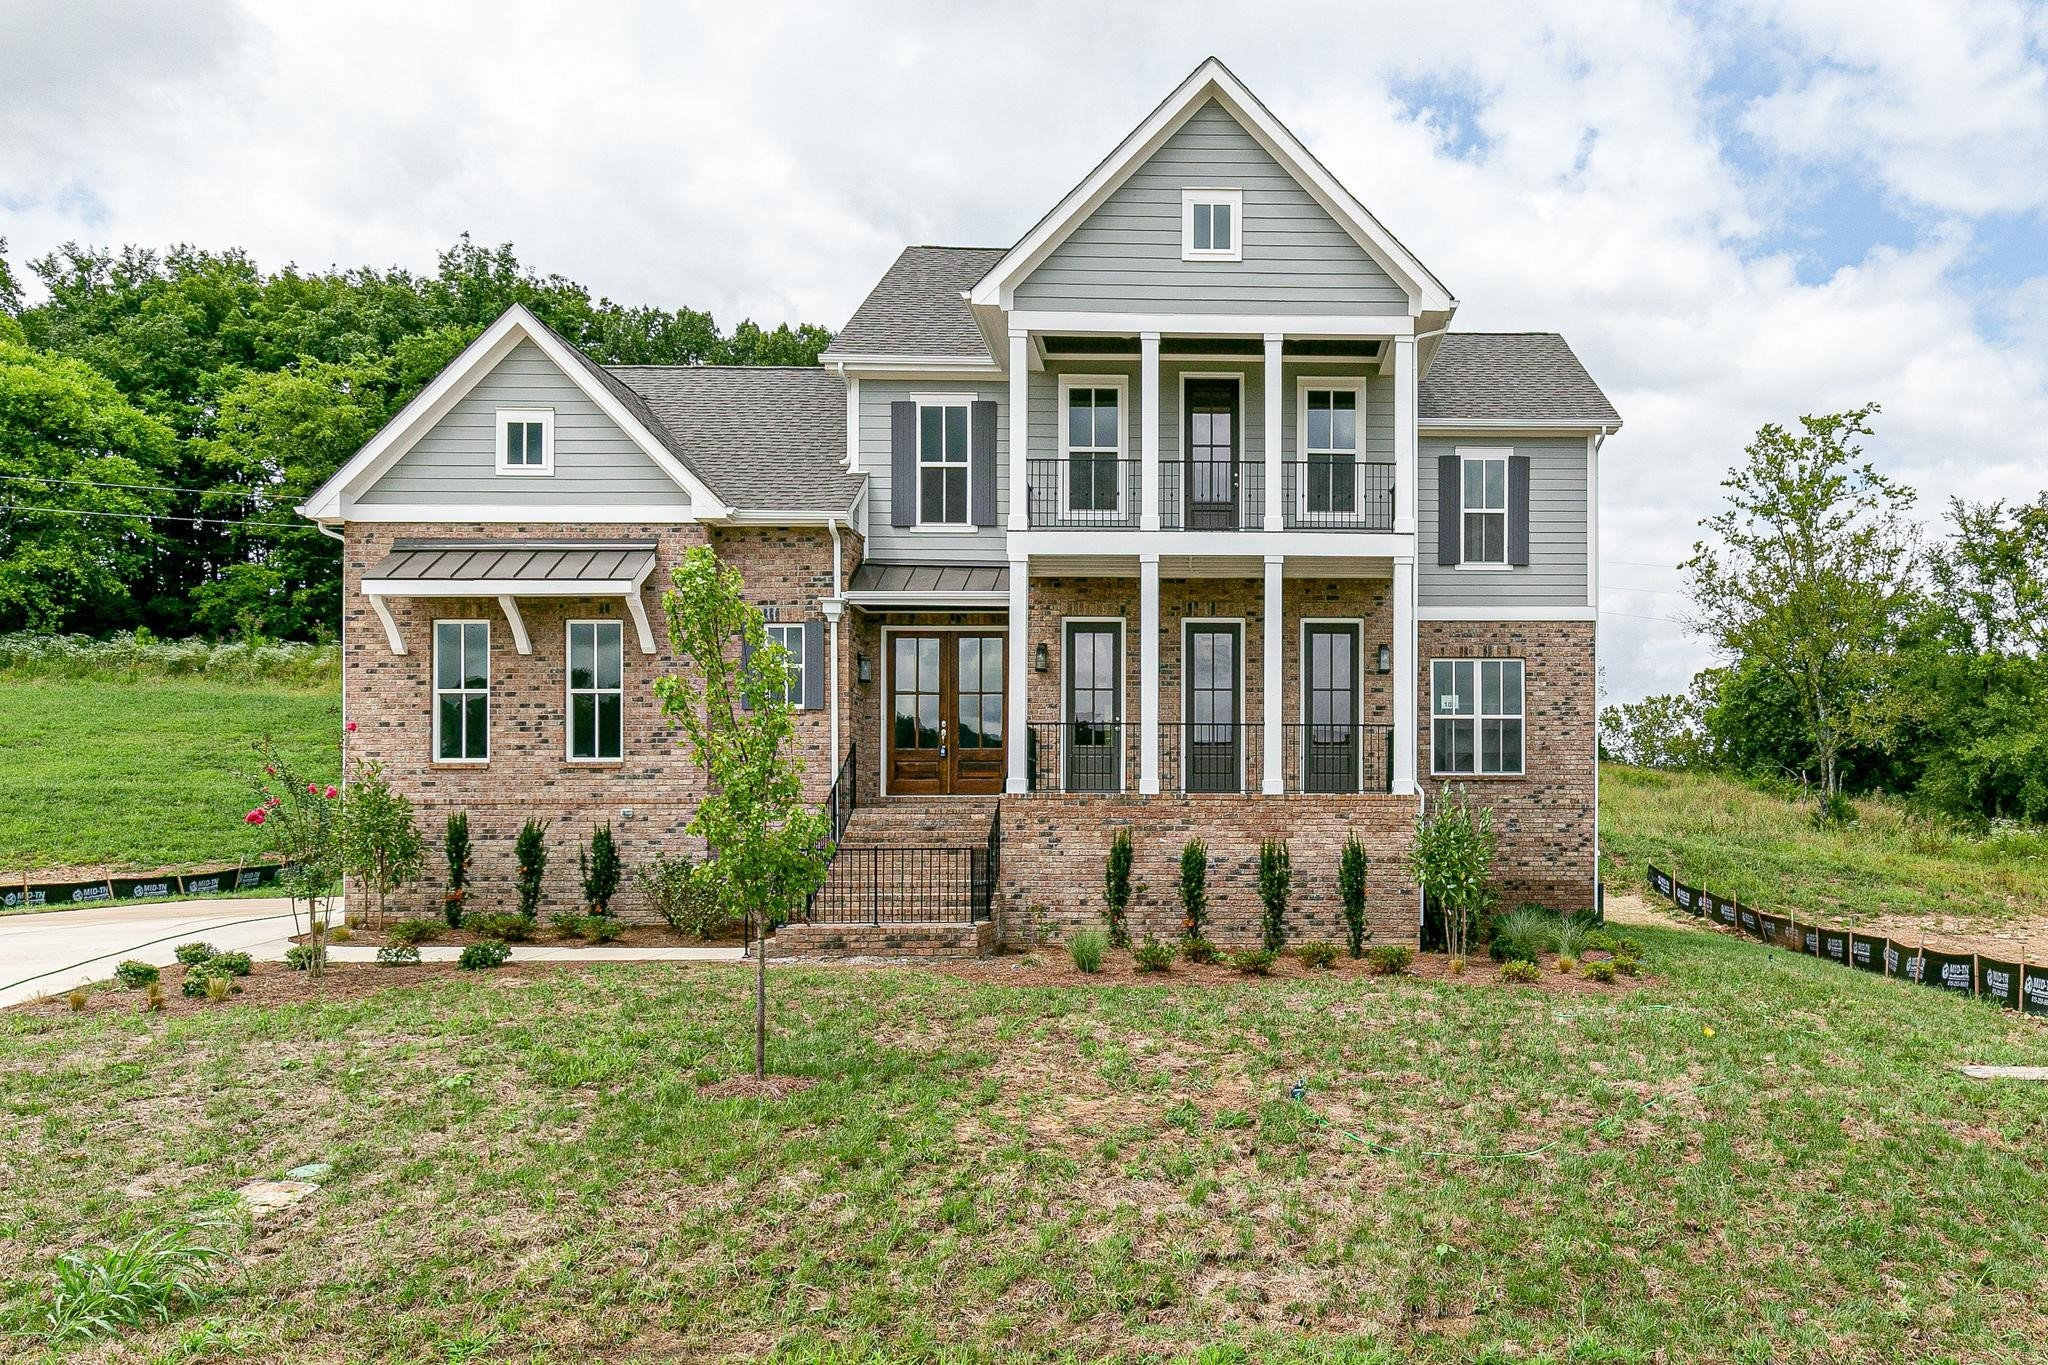 7009 Vineyard Valley Dr (103) Property Photo - College Grove, TN real estate listing